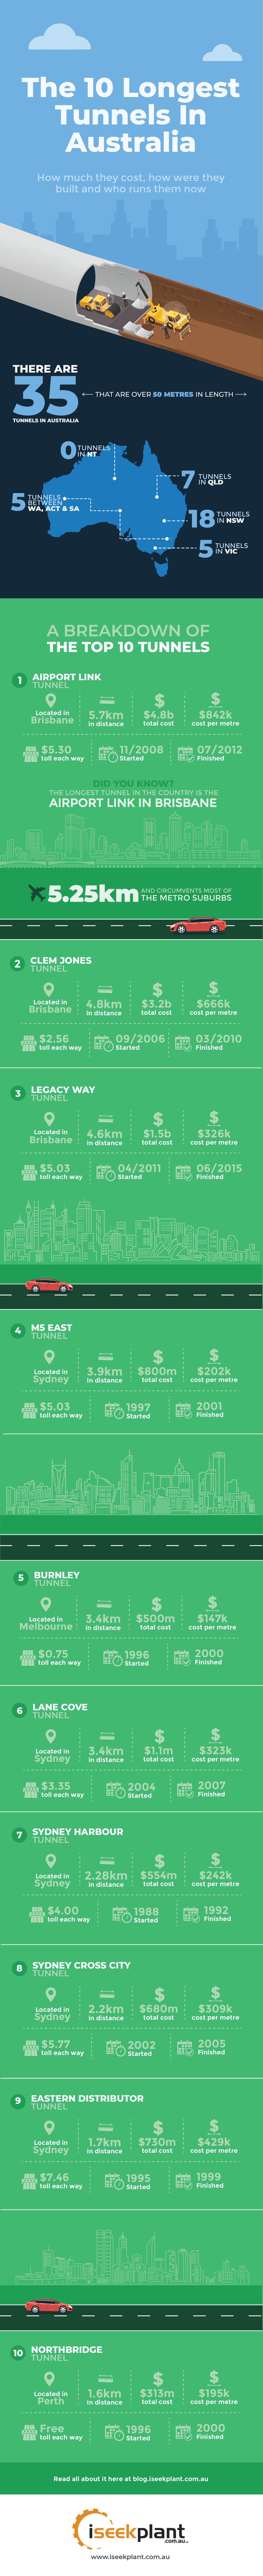 Top-10-Tunnels-Infographic-Final-01